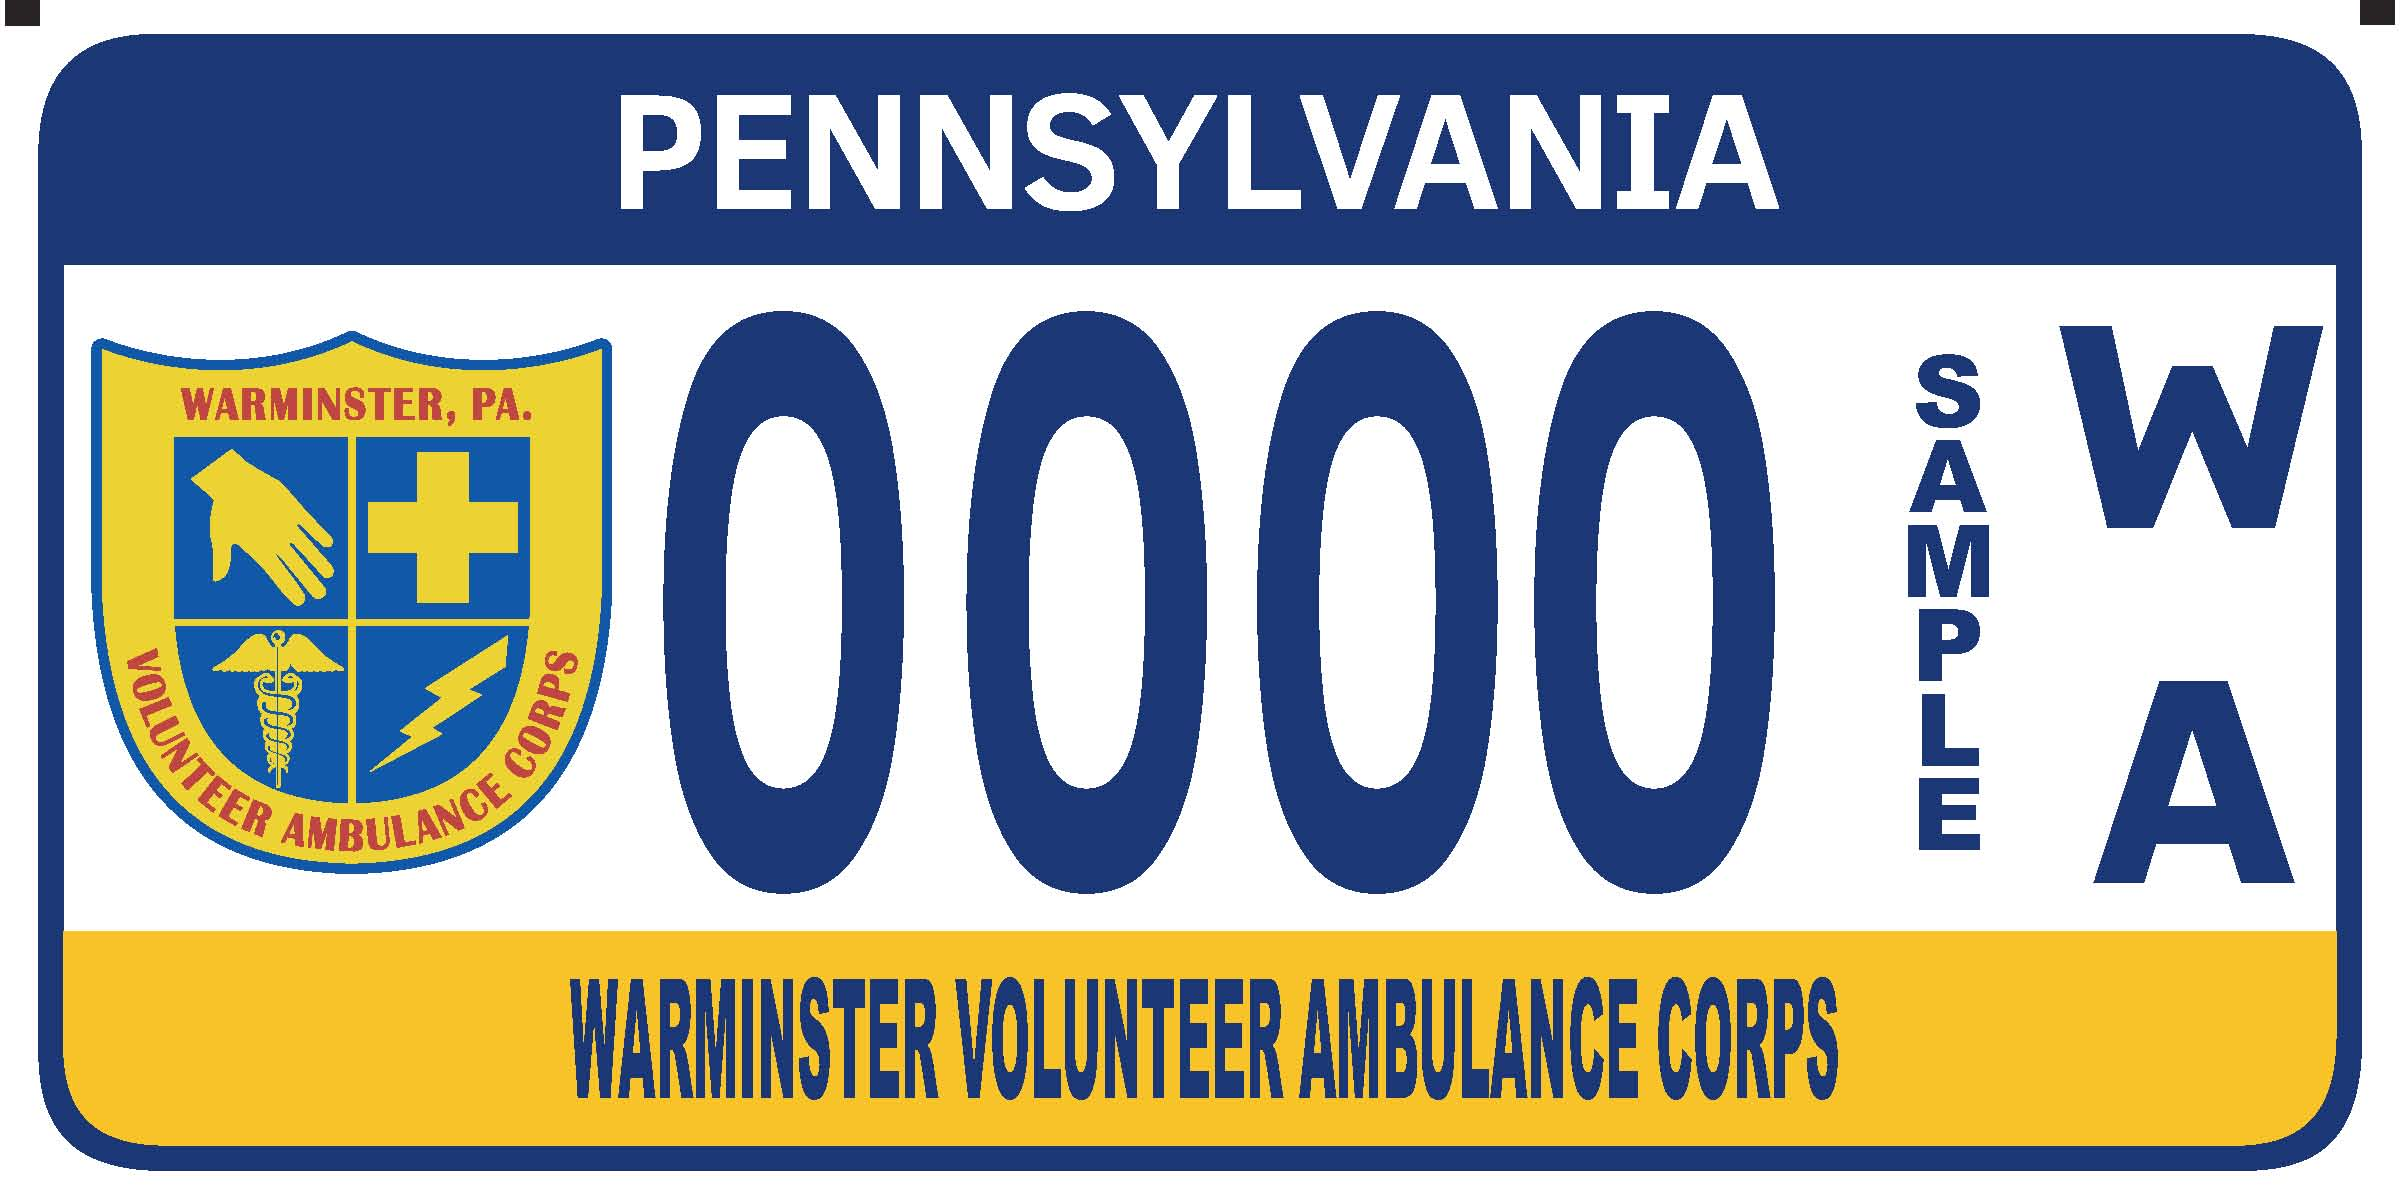 Warminster Volunteer Ambulance Corps